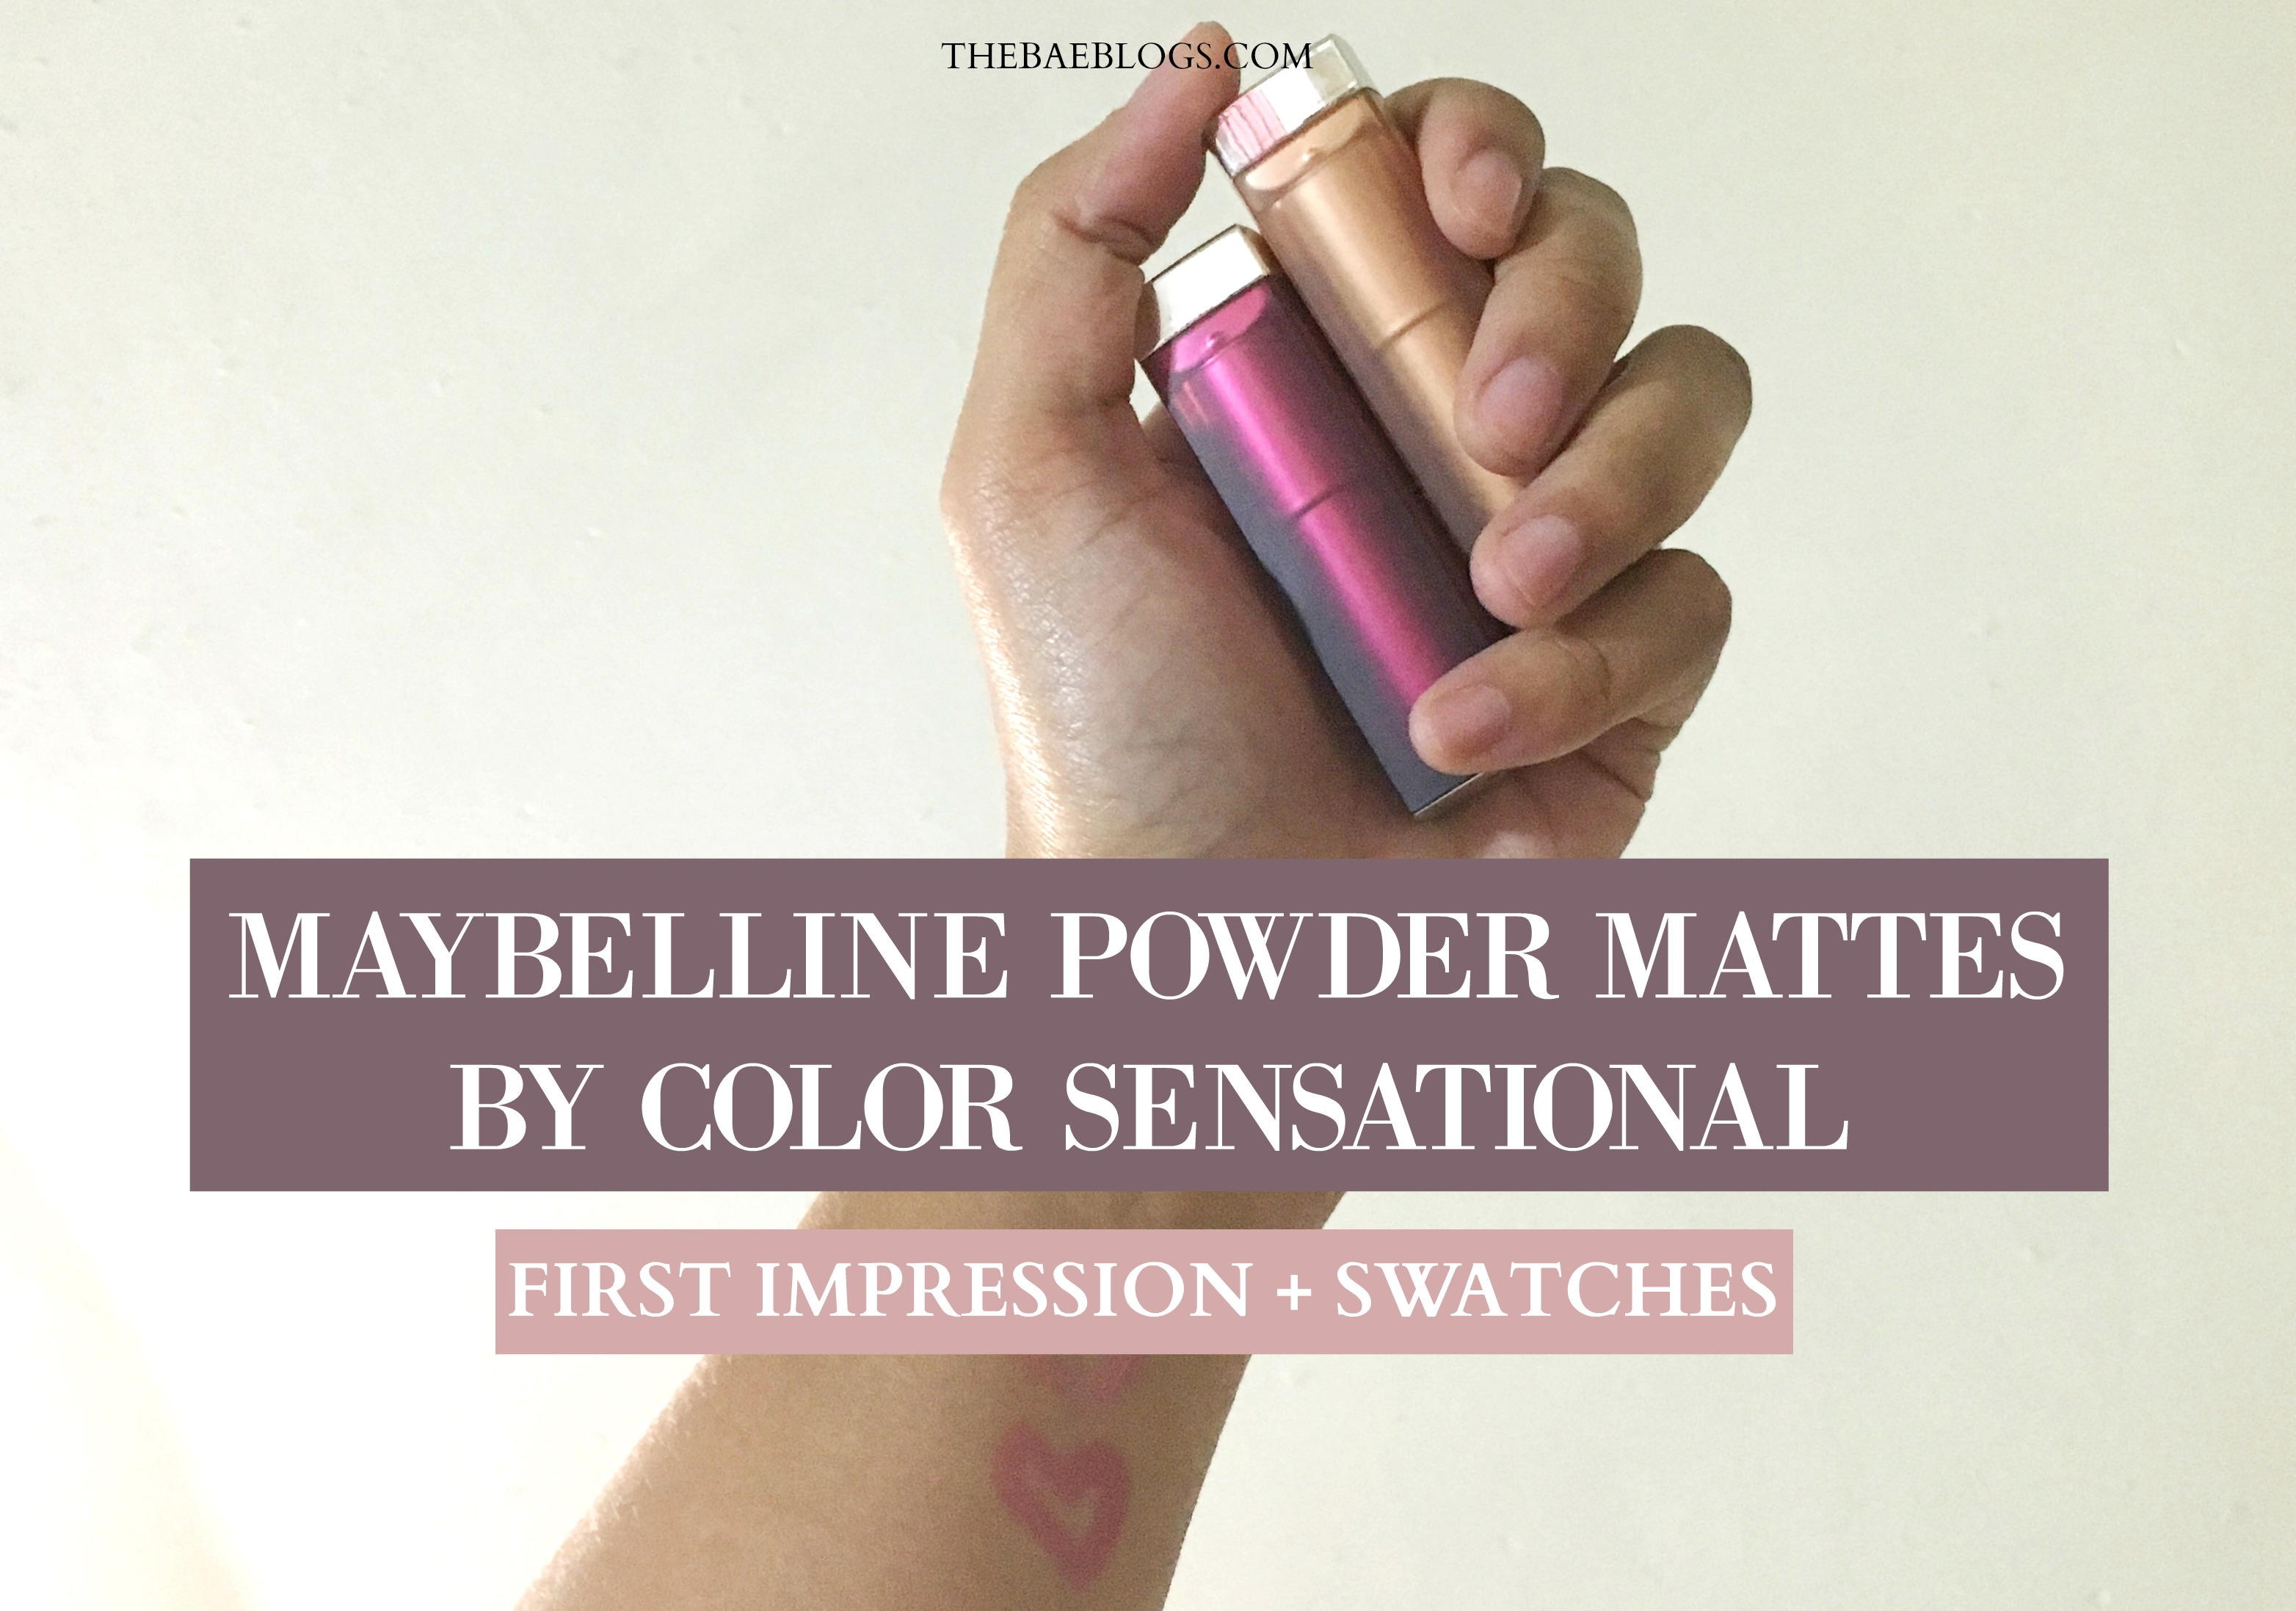 Maybelline Powder Mattes by Color Sensational: First Impression + Swatches